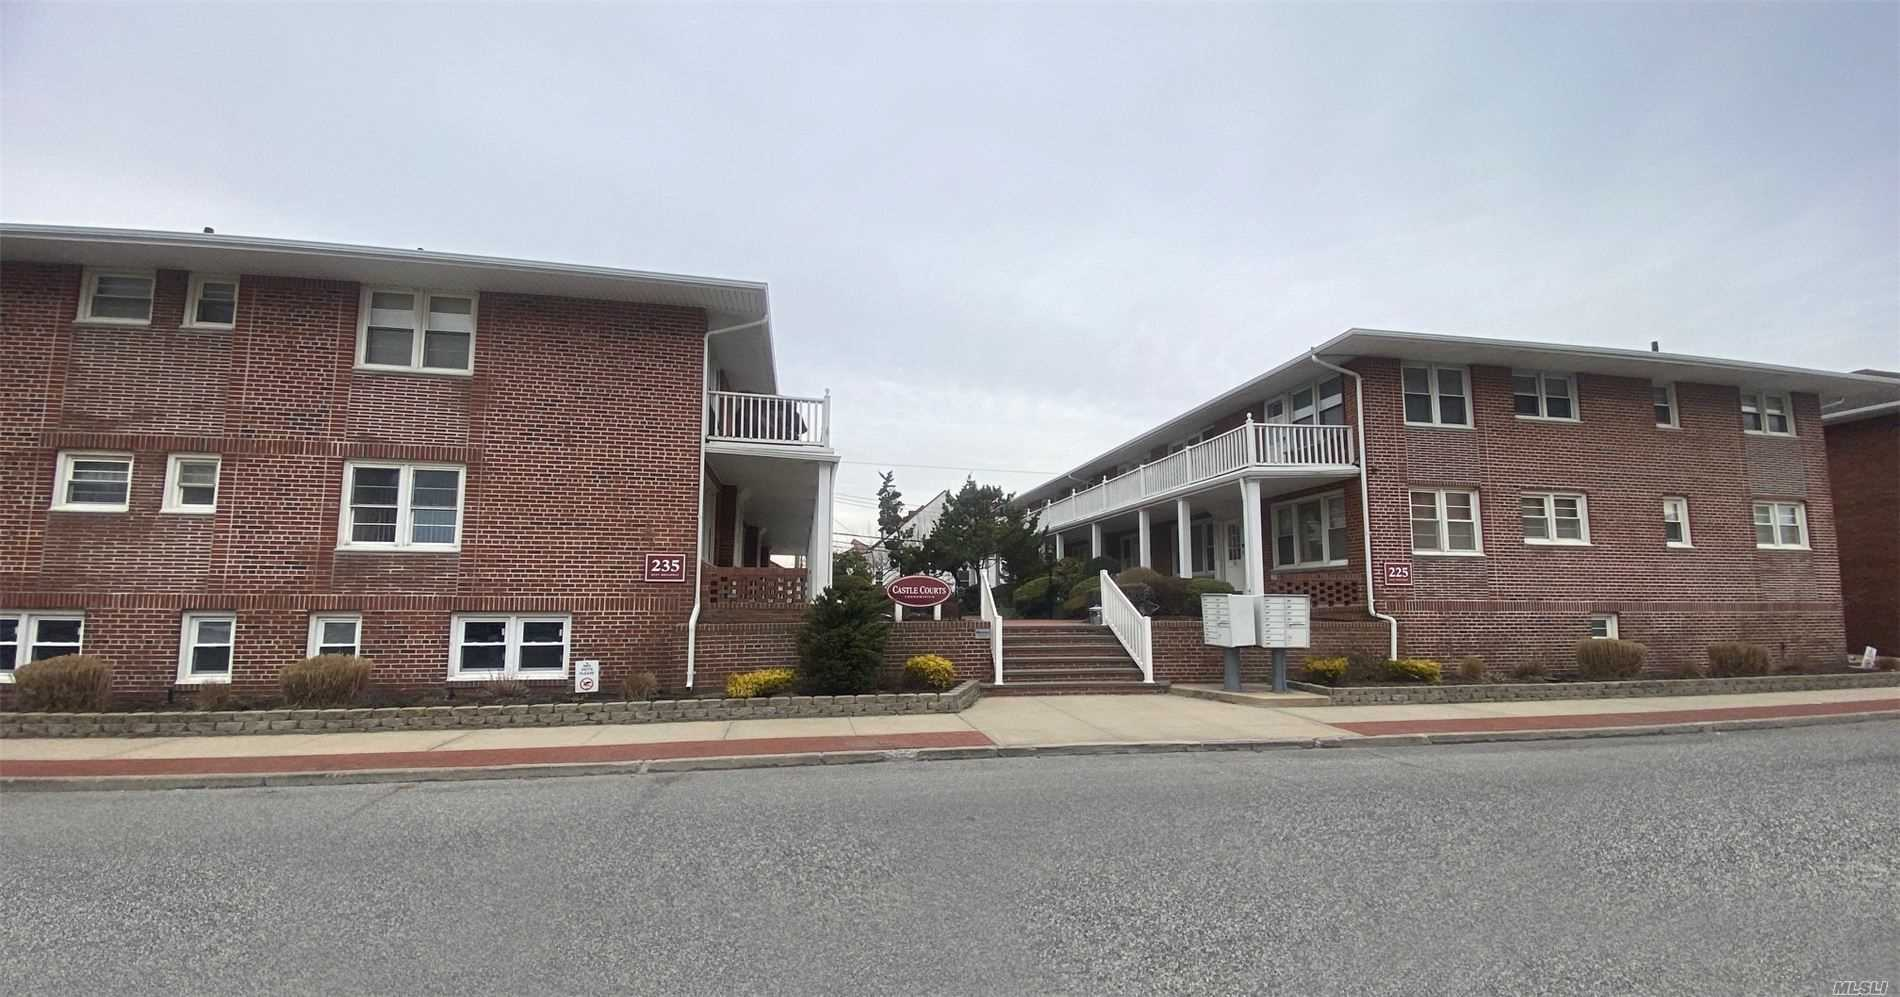 Property for sale at 235 W Broadway # C3, Long Beach NY 11561, Long Beach,  New York 11561